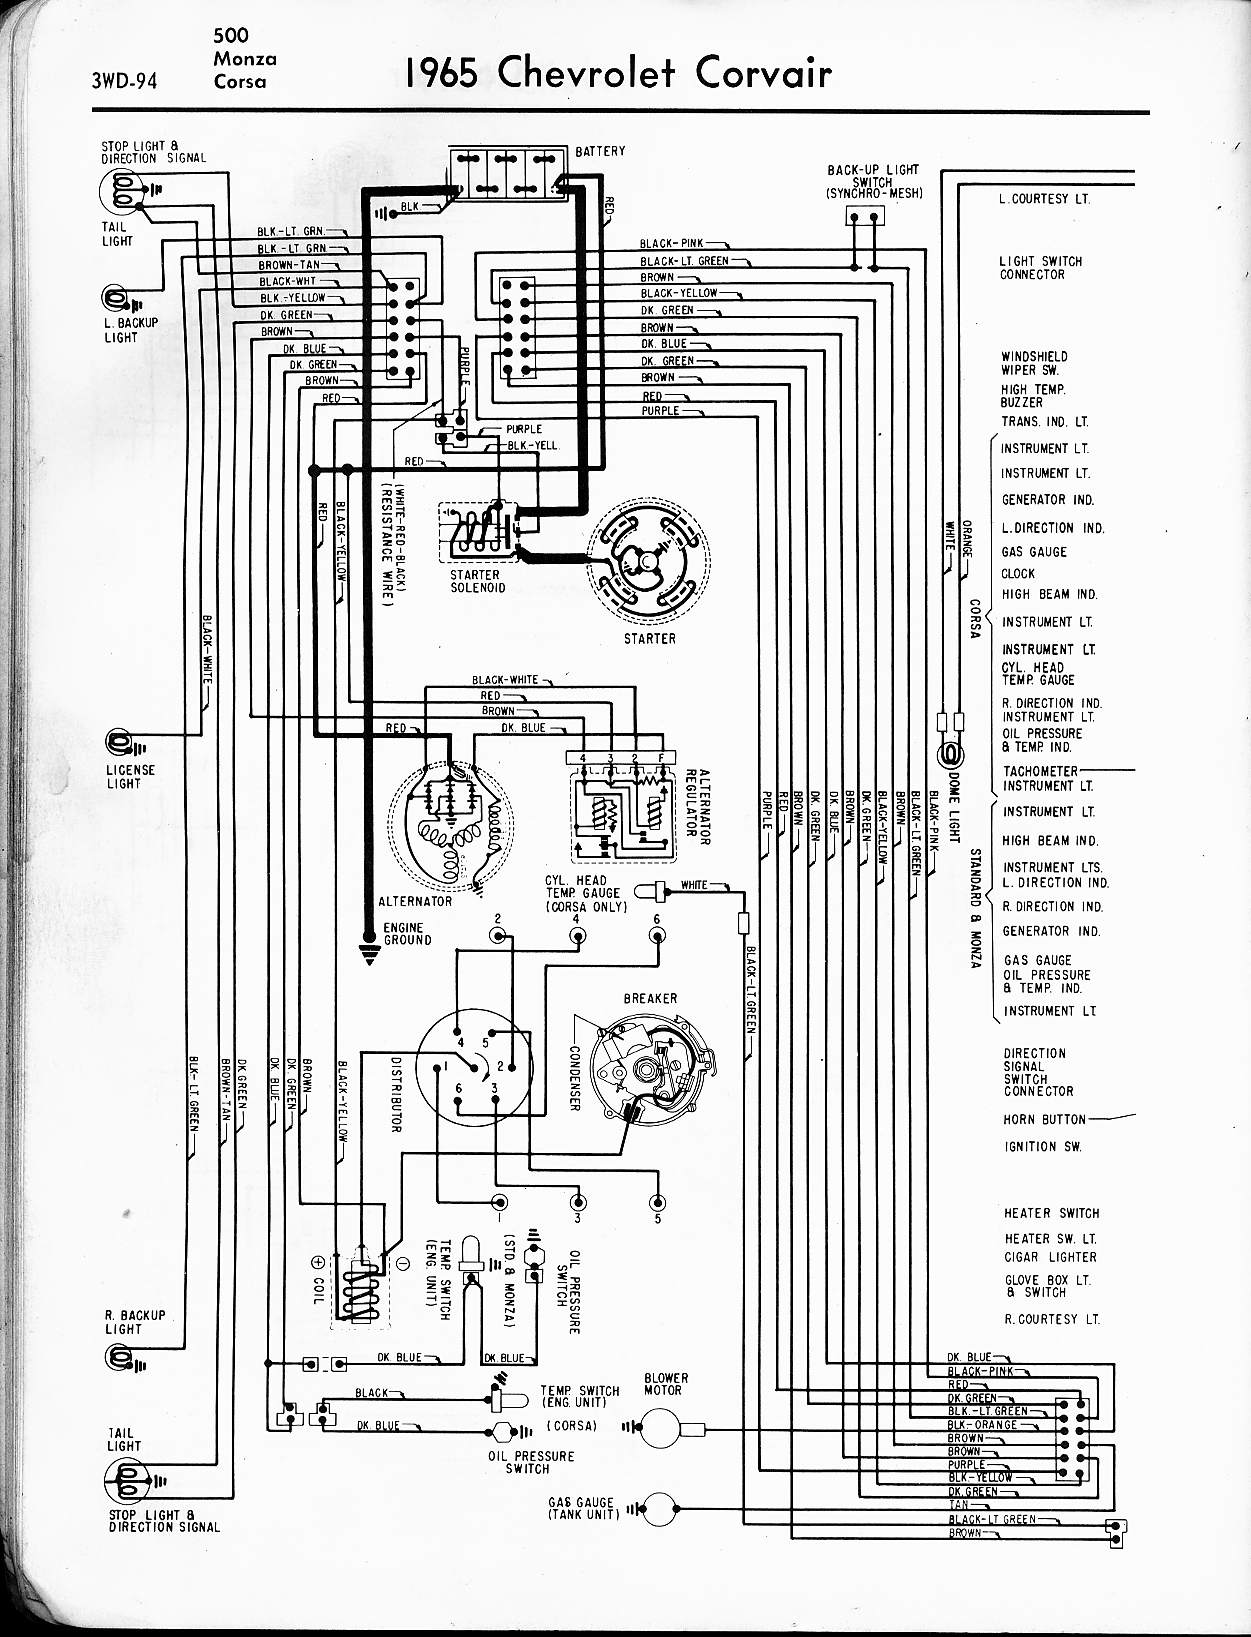 MWireChev64_3WD 094 57 65 chevy wiring diagrams corsa d wiring diagram at n-0.co